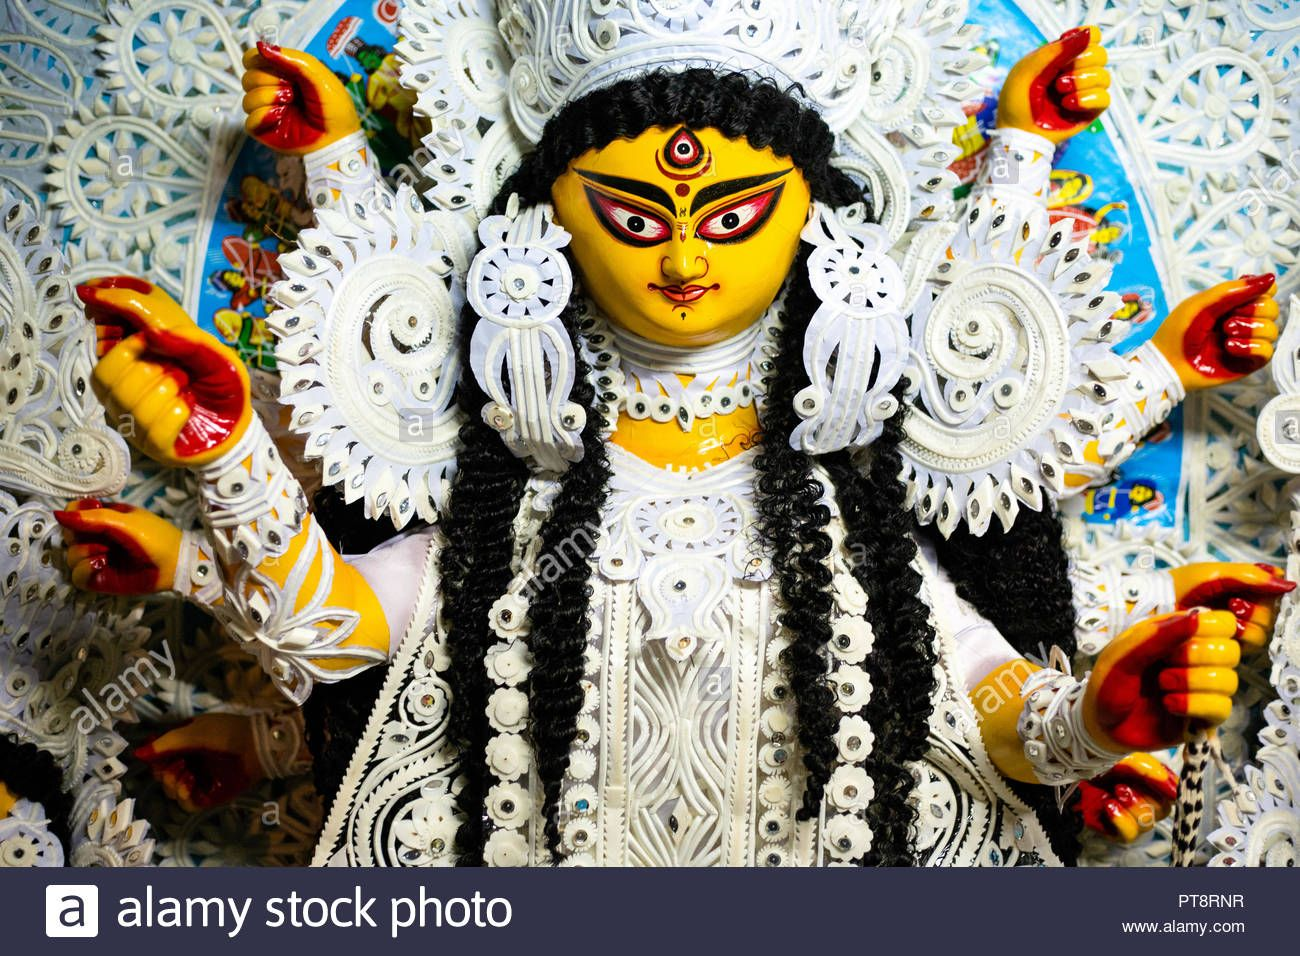 Download This Stock Image Durga Maa Durga Idol Durga Puja In Kolkata West Bengal Pt8rnr From Alamy S Library Of Millions Of Durga Maa Durga Images Durga